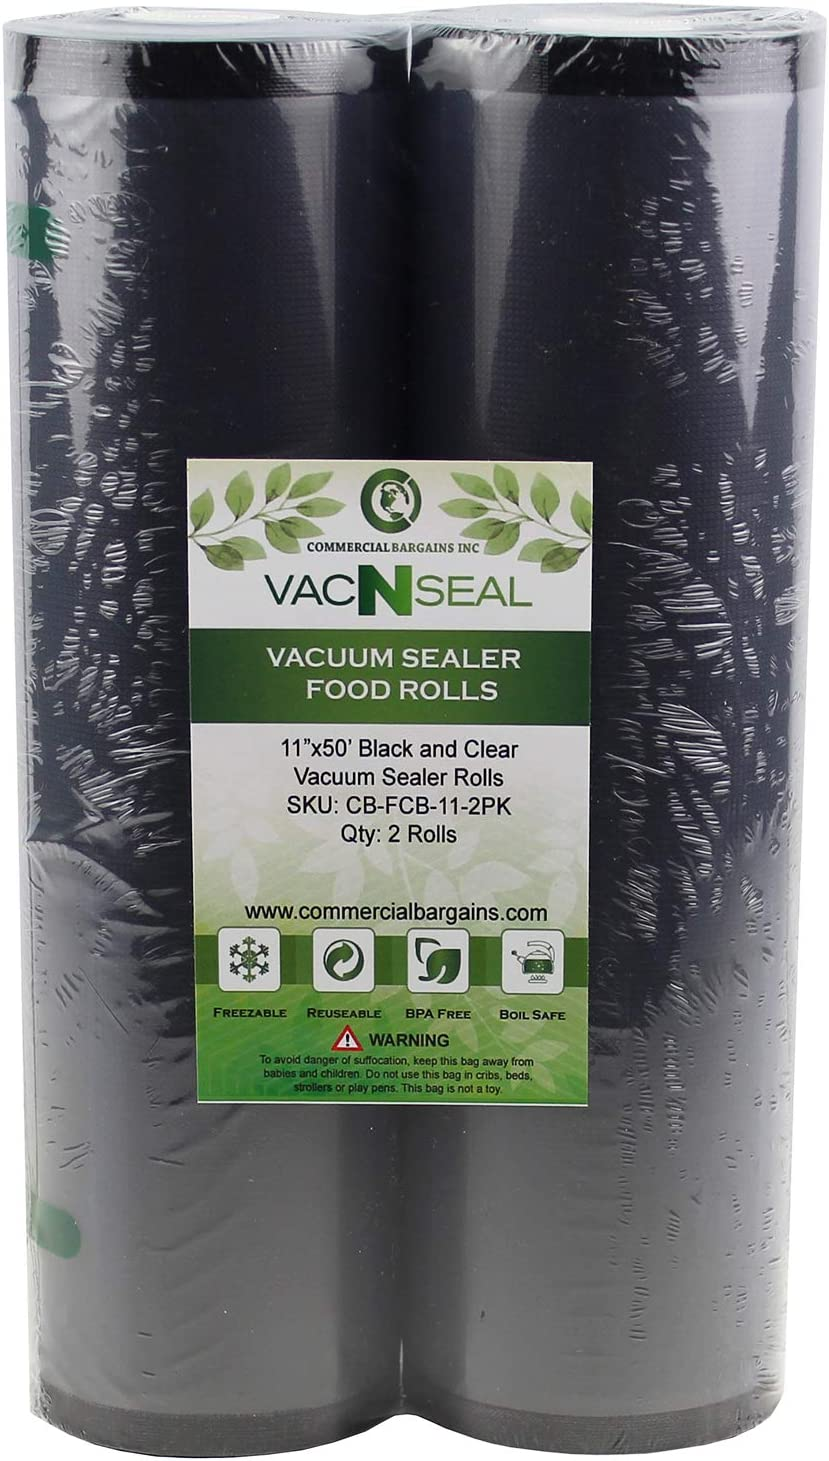 "2 Large Commercial Bargains 11"" x 50' Black and Clear Commercial Vacuum Sealer Food Storage Rolls"